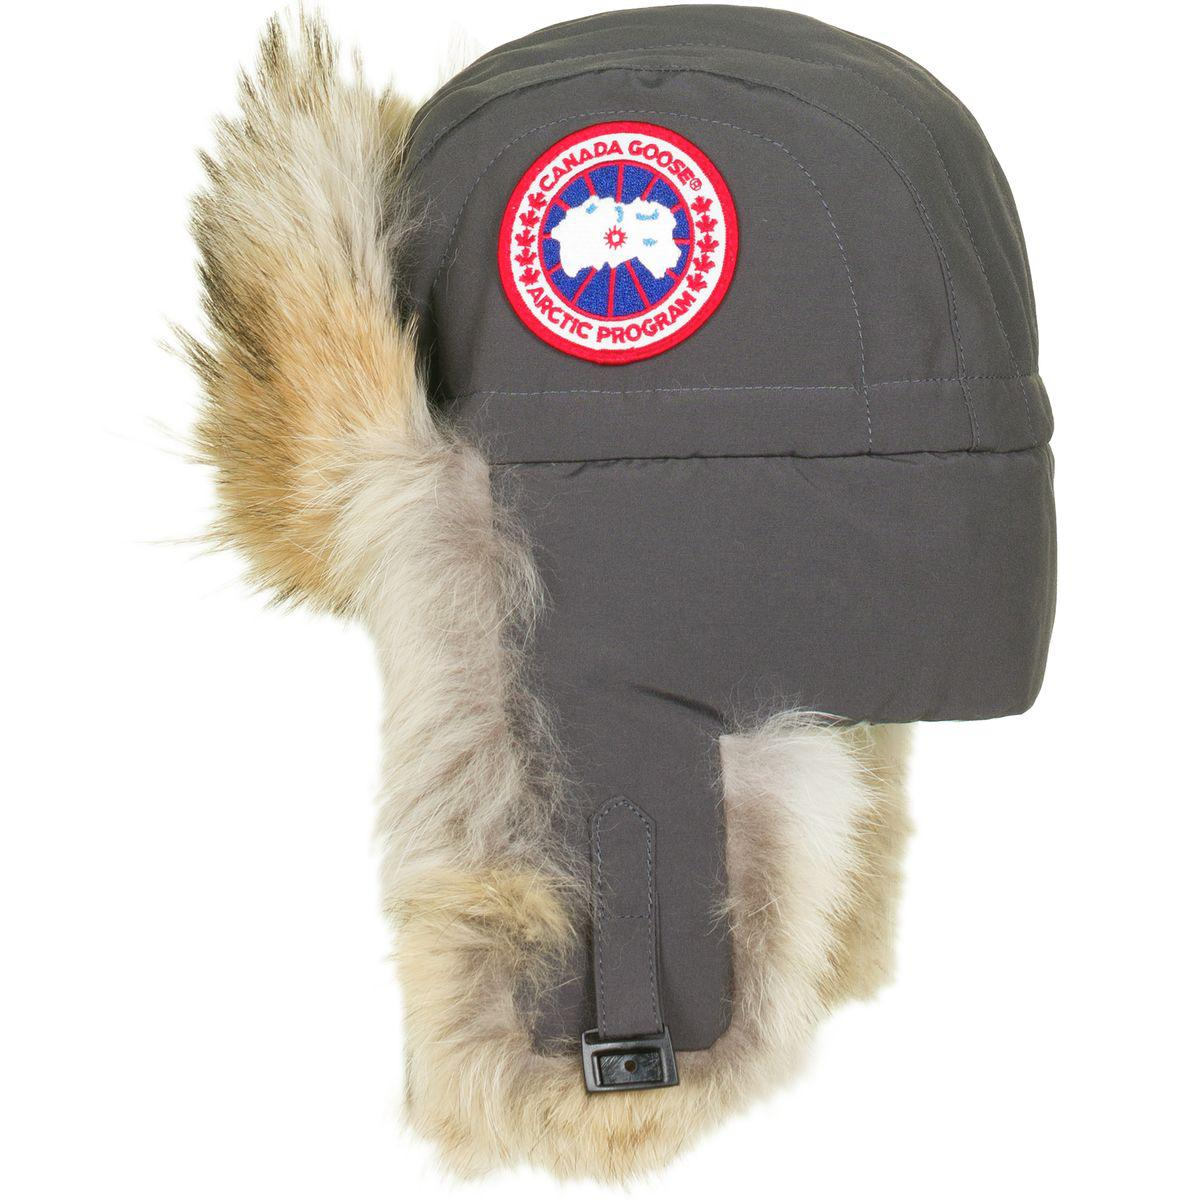 3151db543758 Canada Goose Aviator Hat in Gray - Lyst